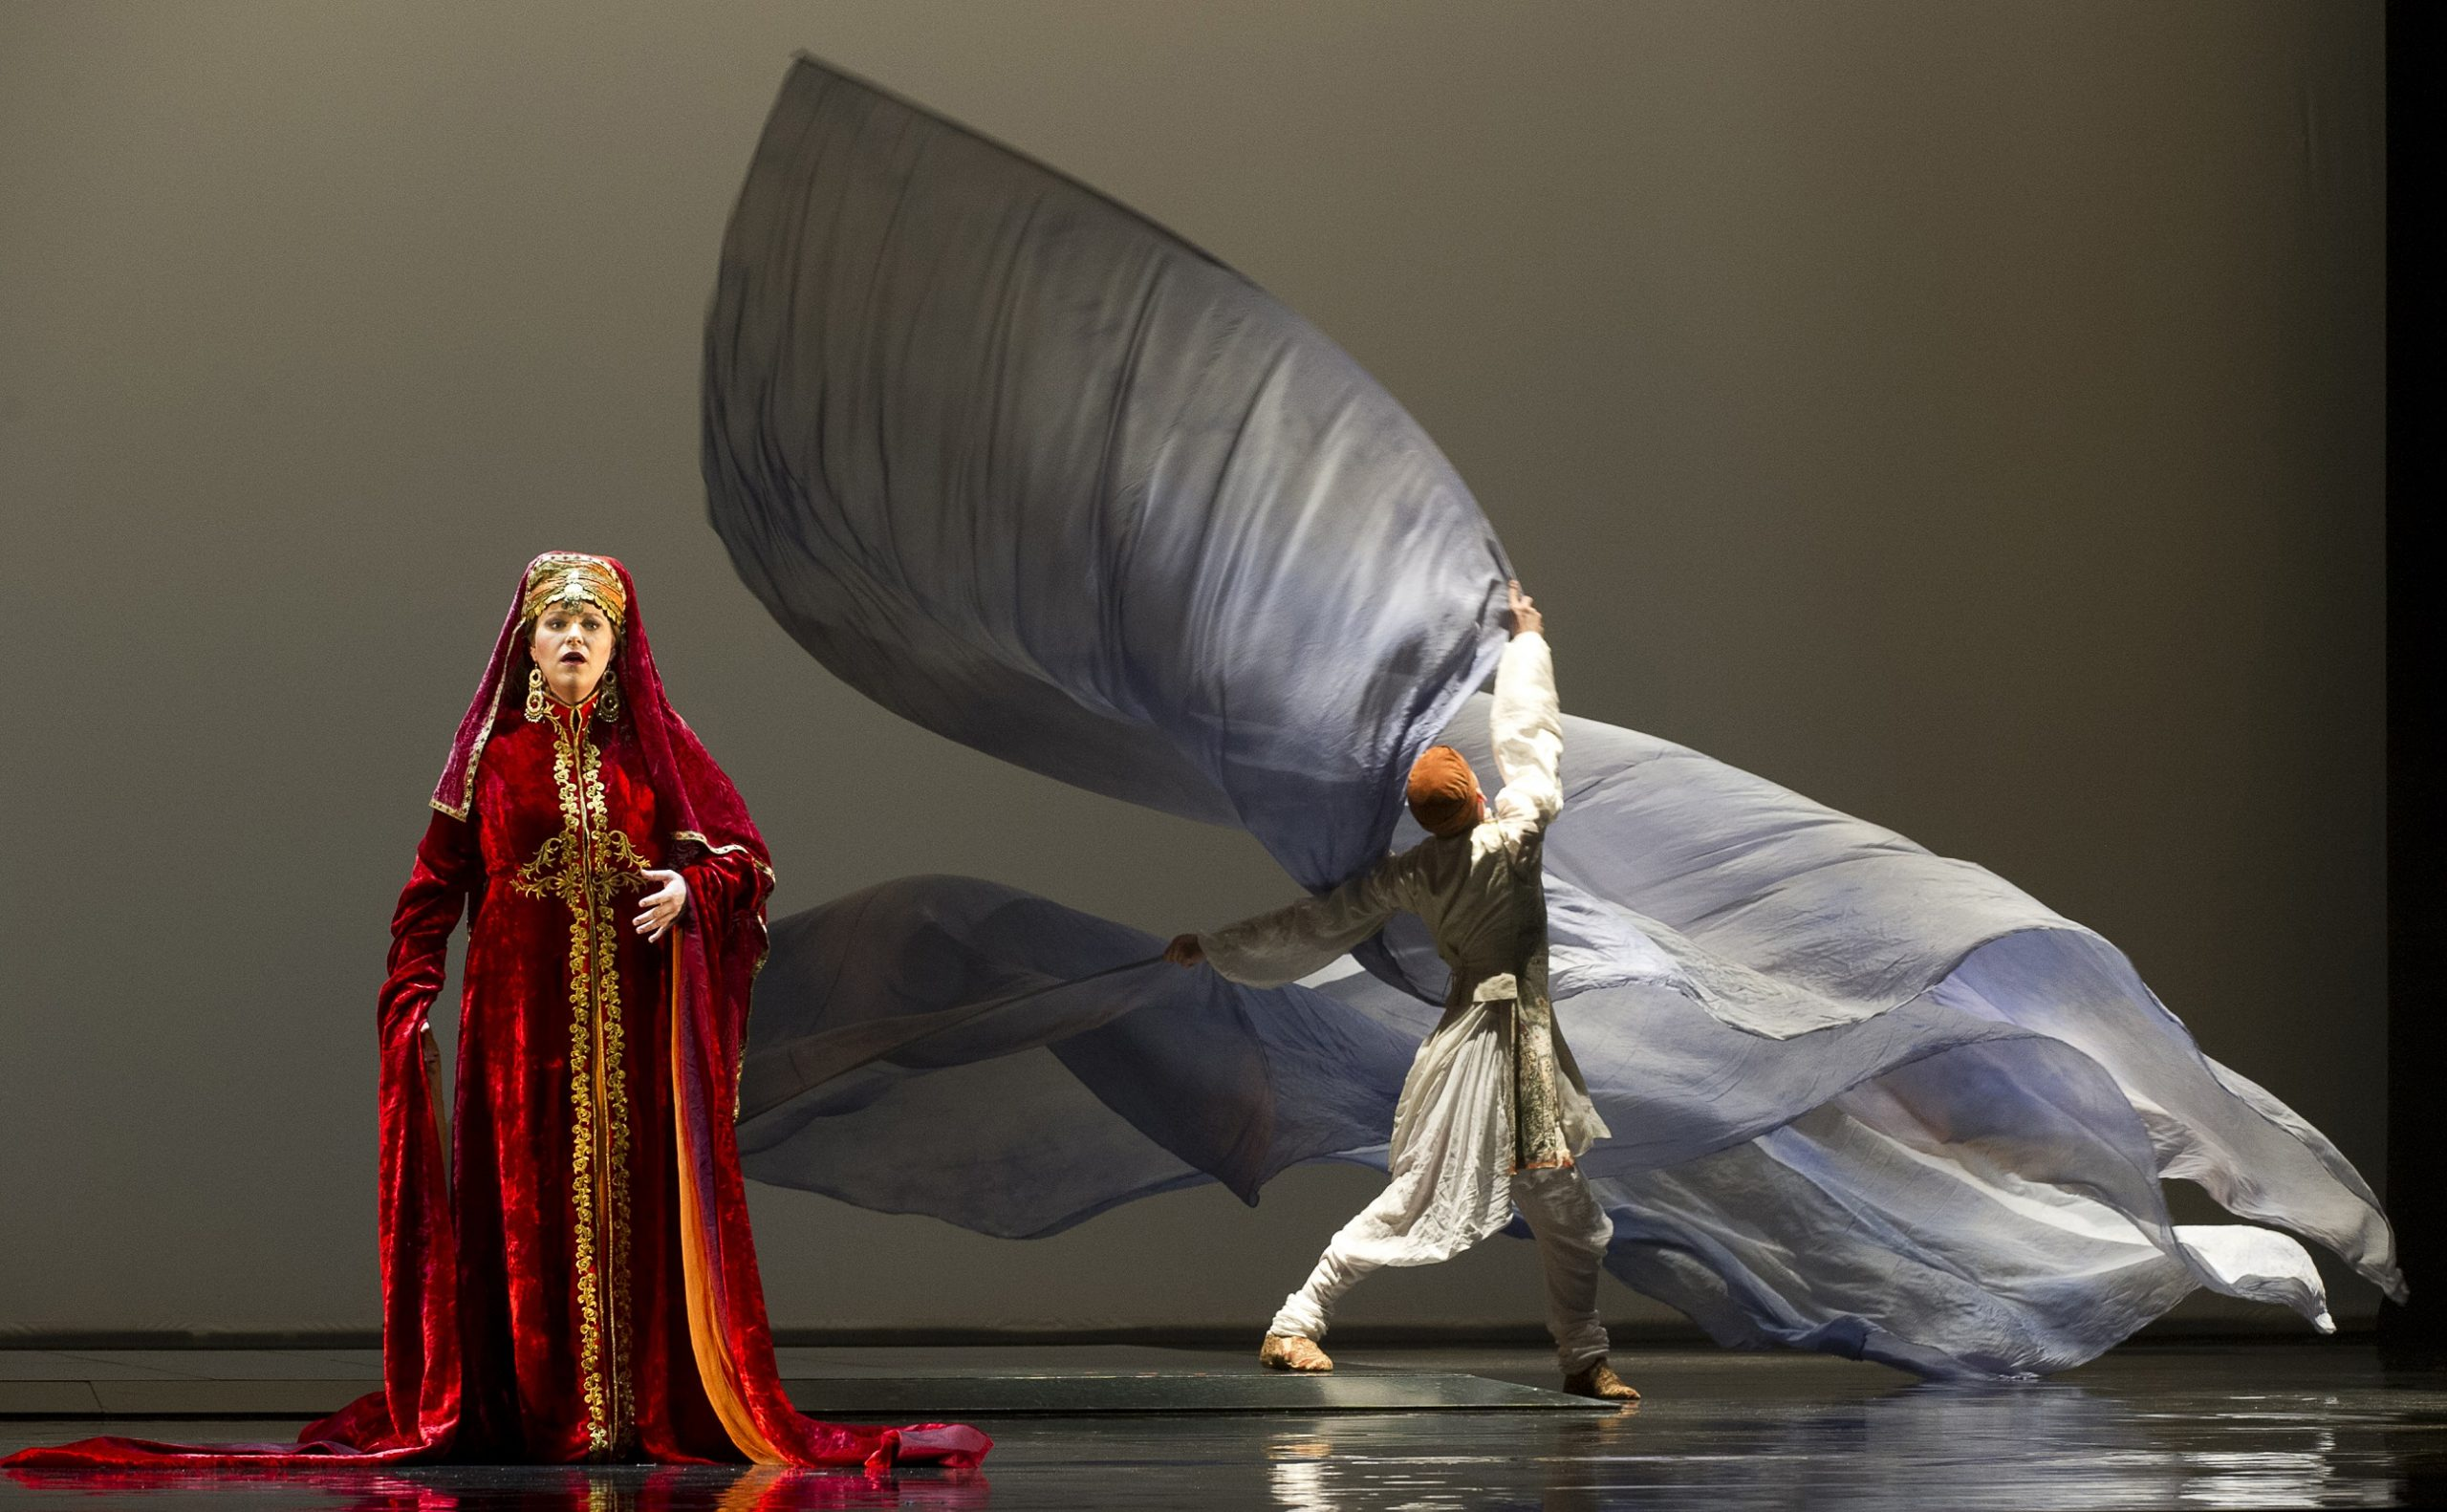 Erin Wall as Clémence and acrobat Ted Sikström in a scene from the Canadian Opera Company production of Love from Afar, 2012. Conductor Johannes Debus, original production by Daniele Finzi Pasca, set designer Jean Rabasse, costume designer Kevin Pollard, and lighting designers Daniele Finzi Pasca and Alexis Bowles. Photo: Chris Hutcheson